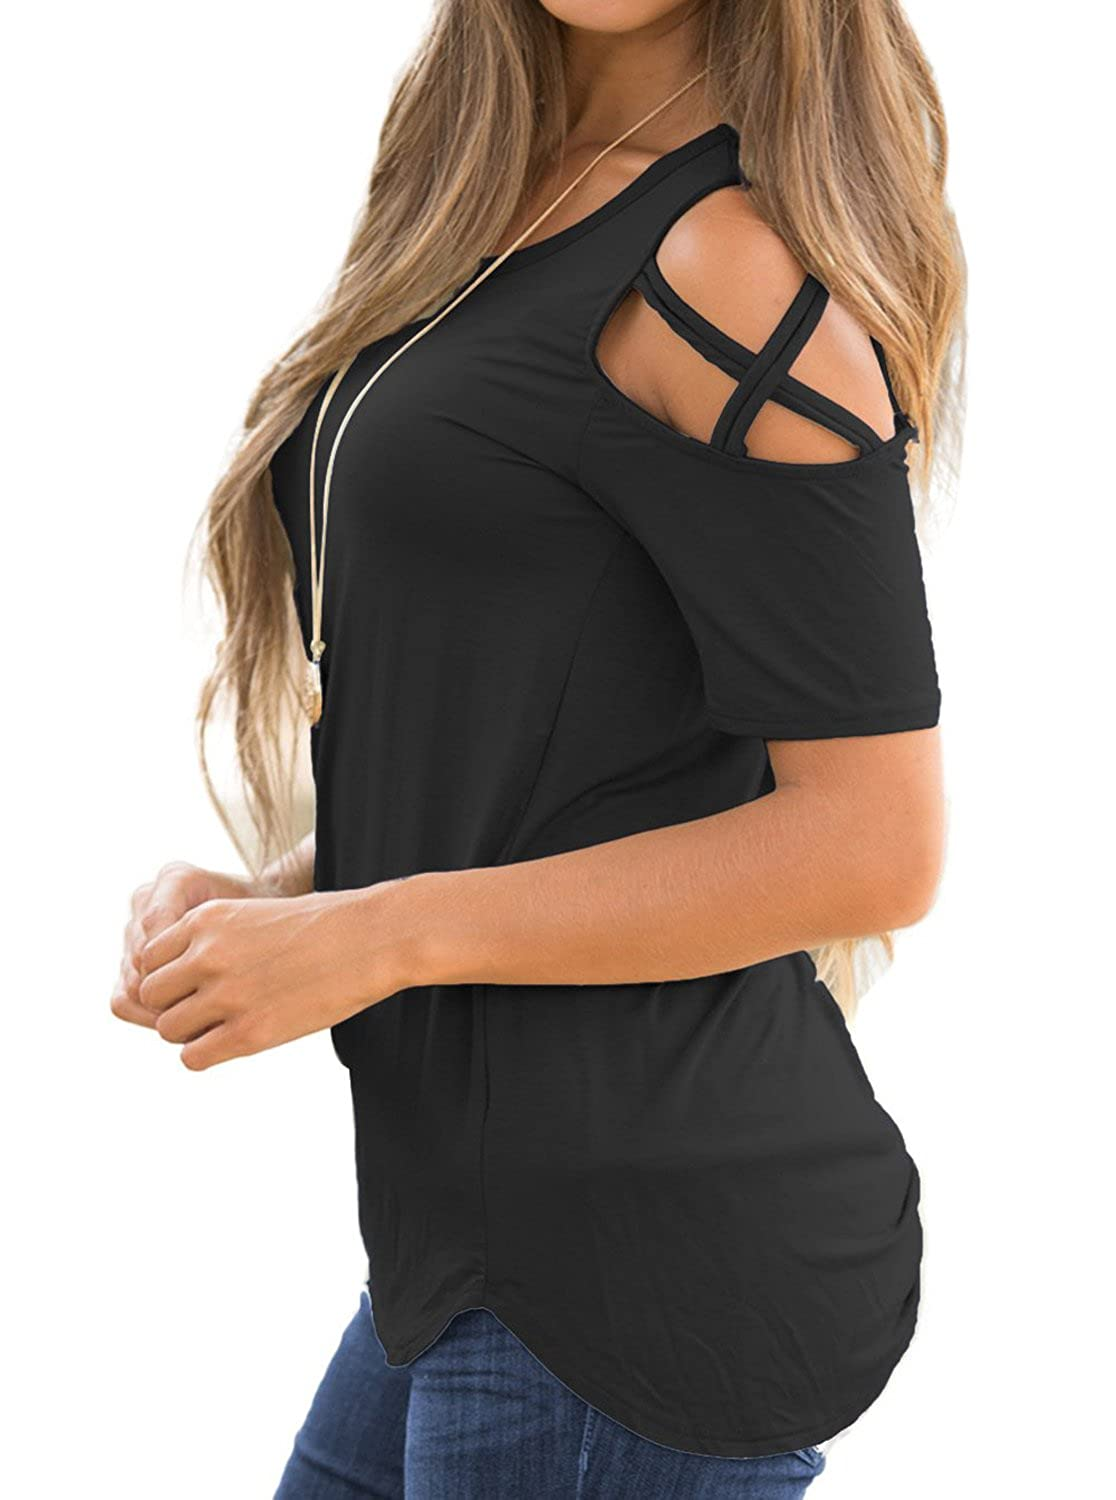 bf971ef94a5 Adreamly Womens Loose Strappy Cold Shoulder Tops Basic T Shirts at Amazon  Women's Clothing store: